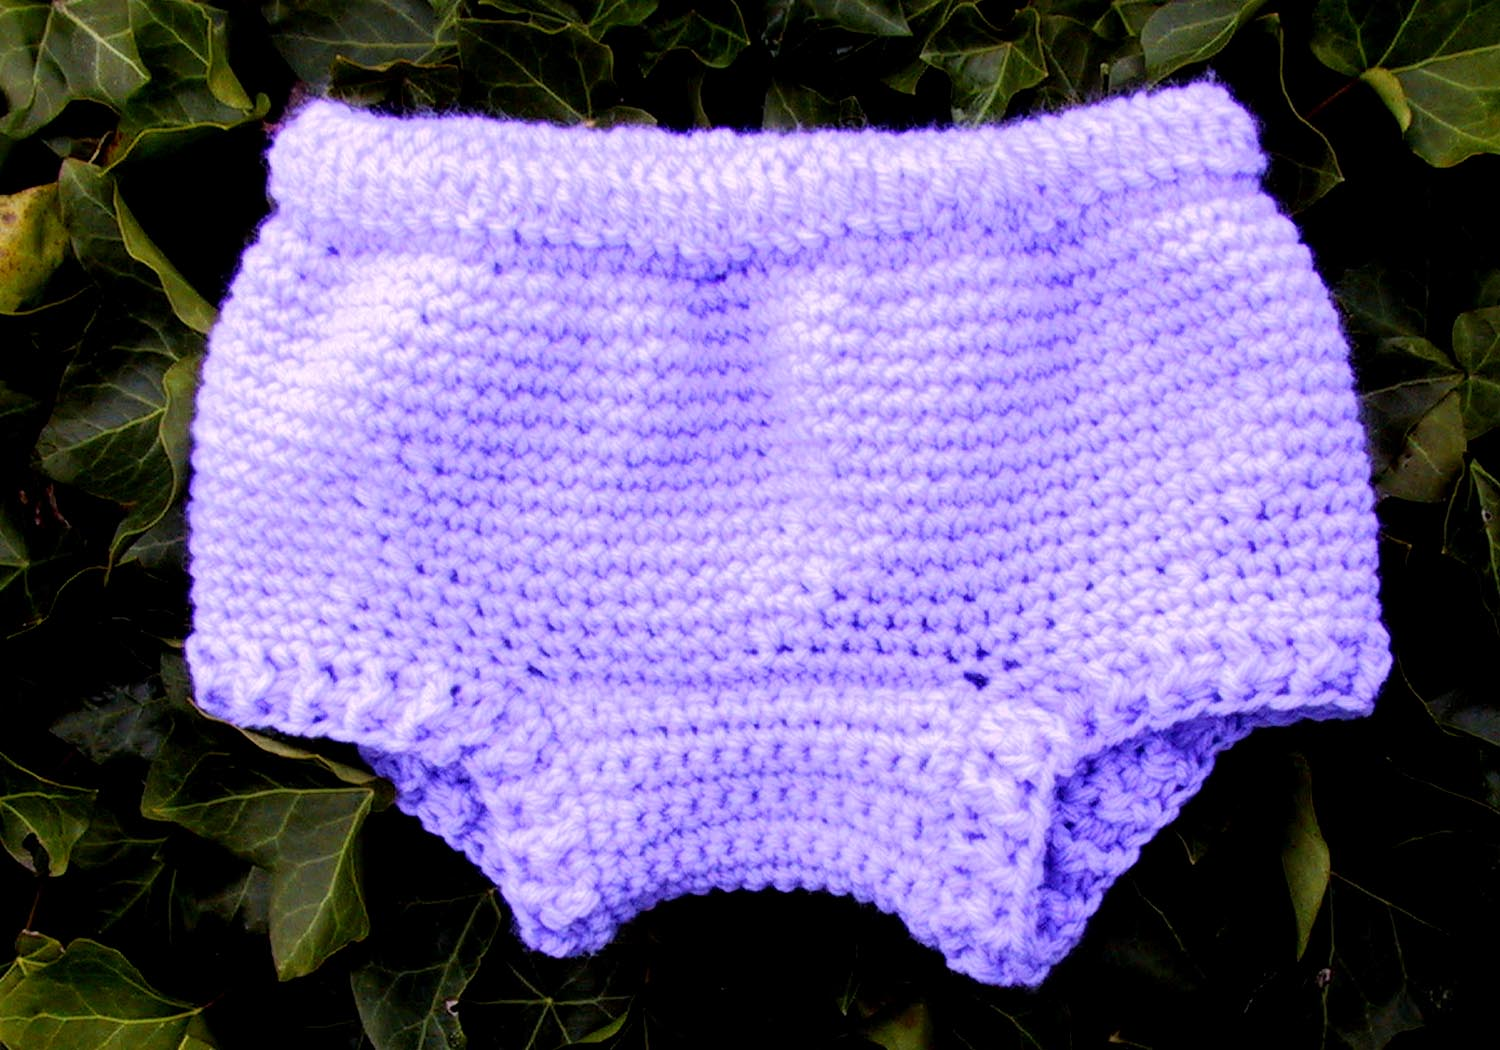 Crochet Patterns Diaper Covers : Crochet Diaper Cover Pattern - Catalog of Patterns